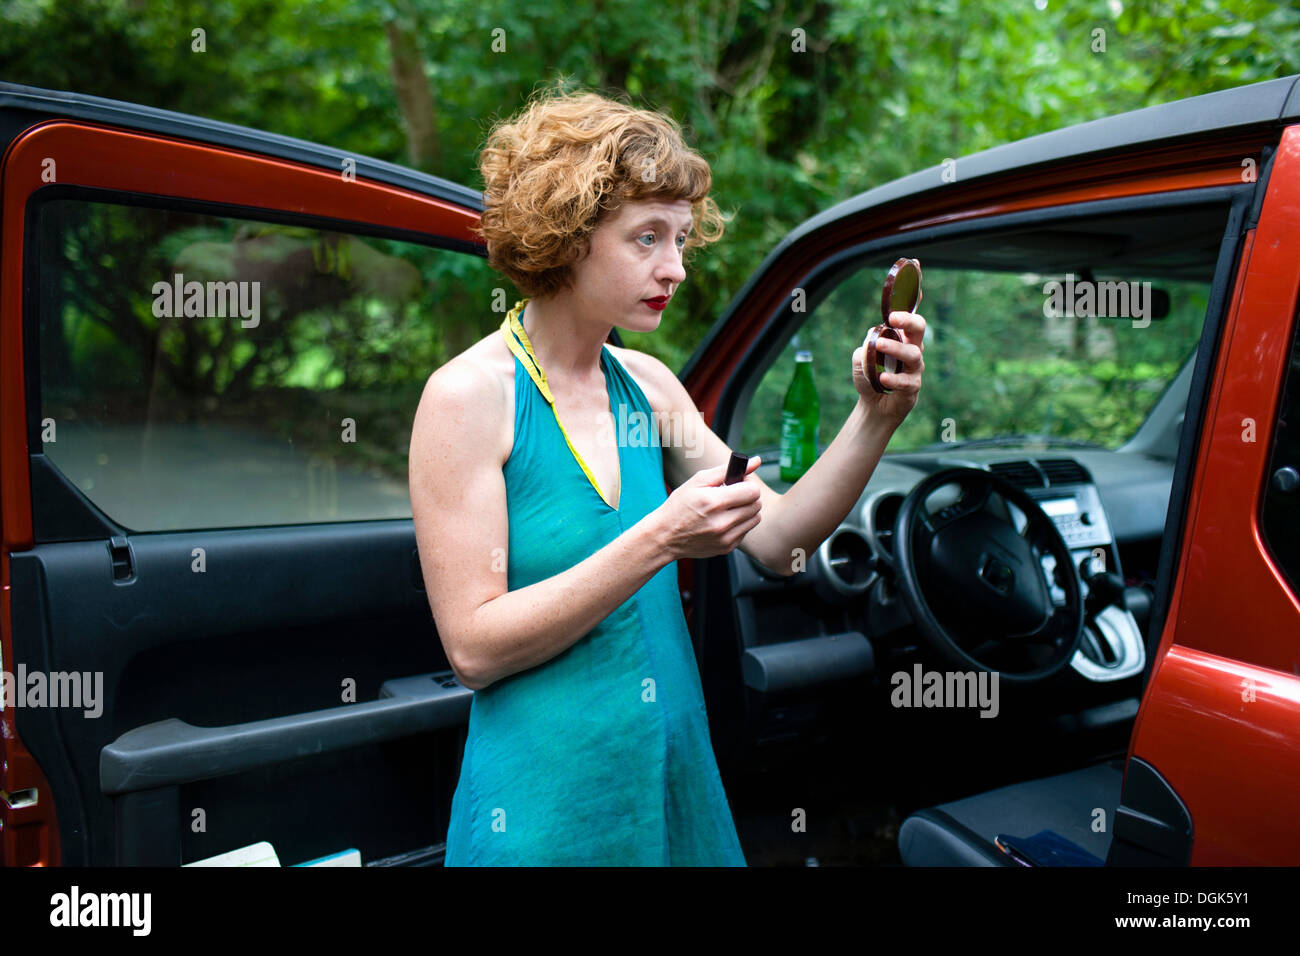 Woman in forest looking at compact mirror - Stock Image